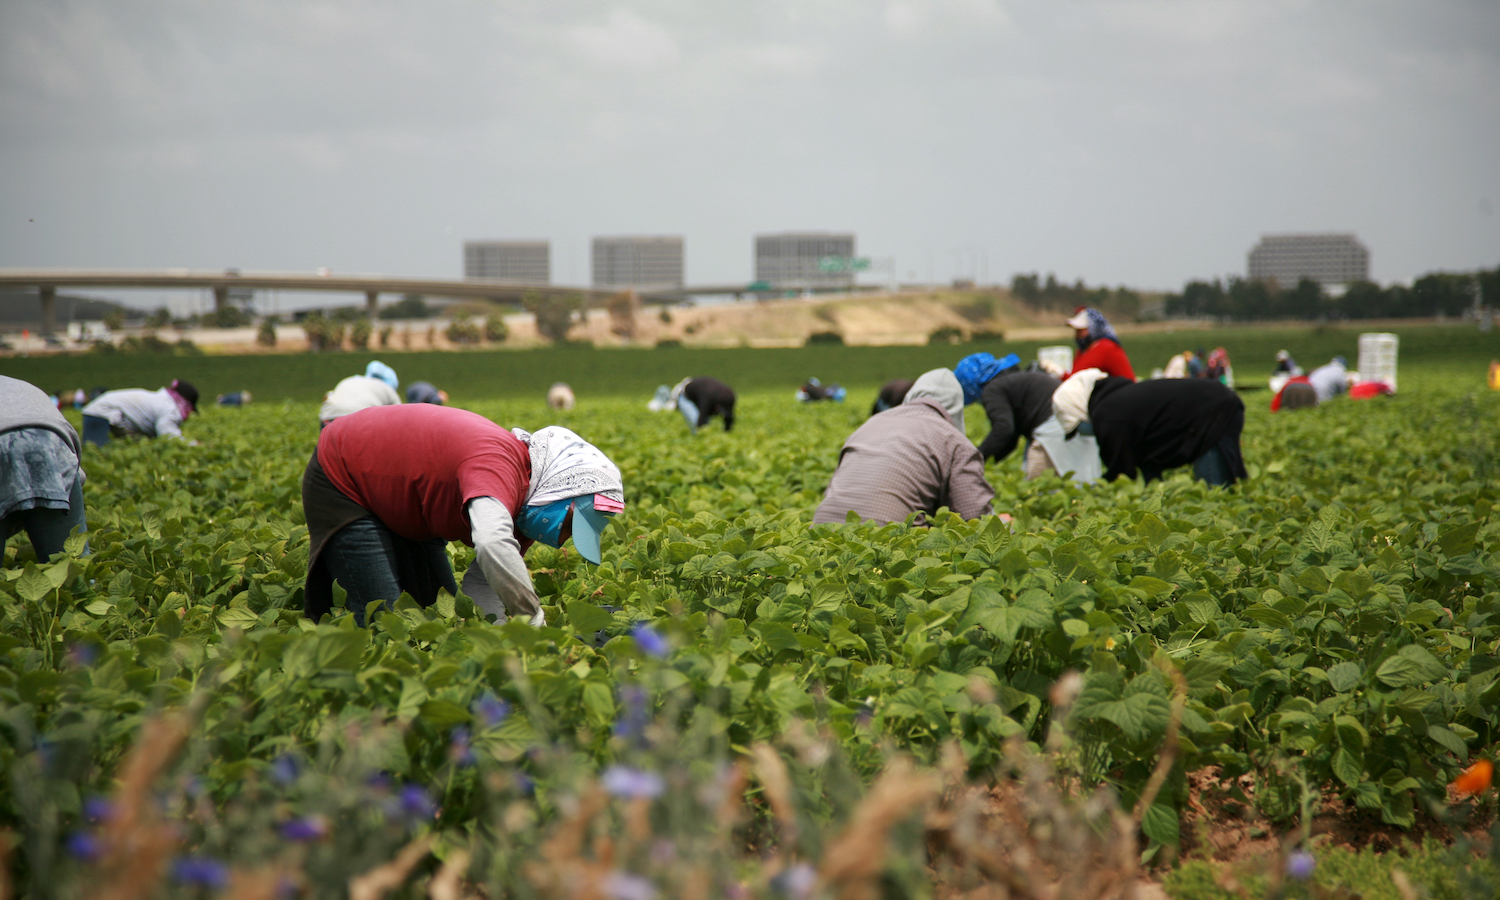 Border closures have farm industry concerned for loss of seasonal workers